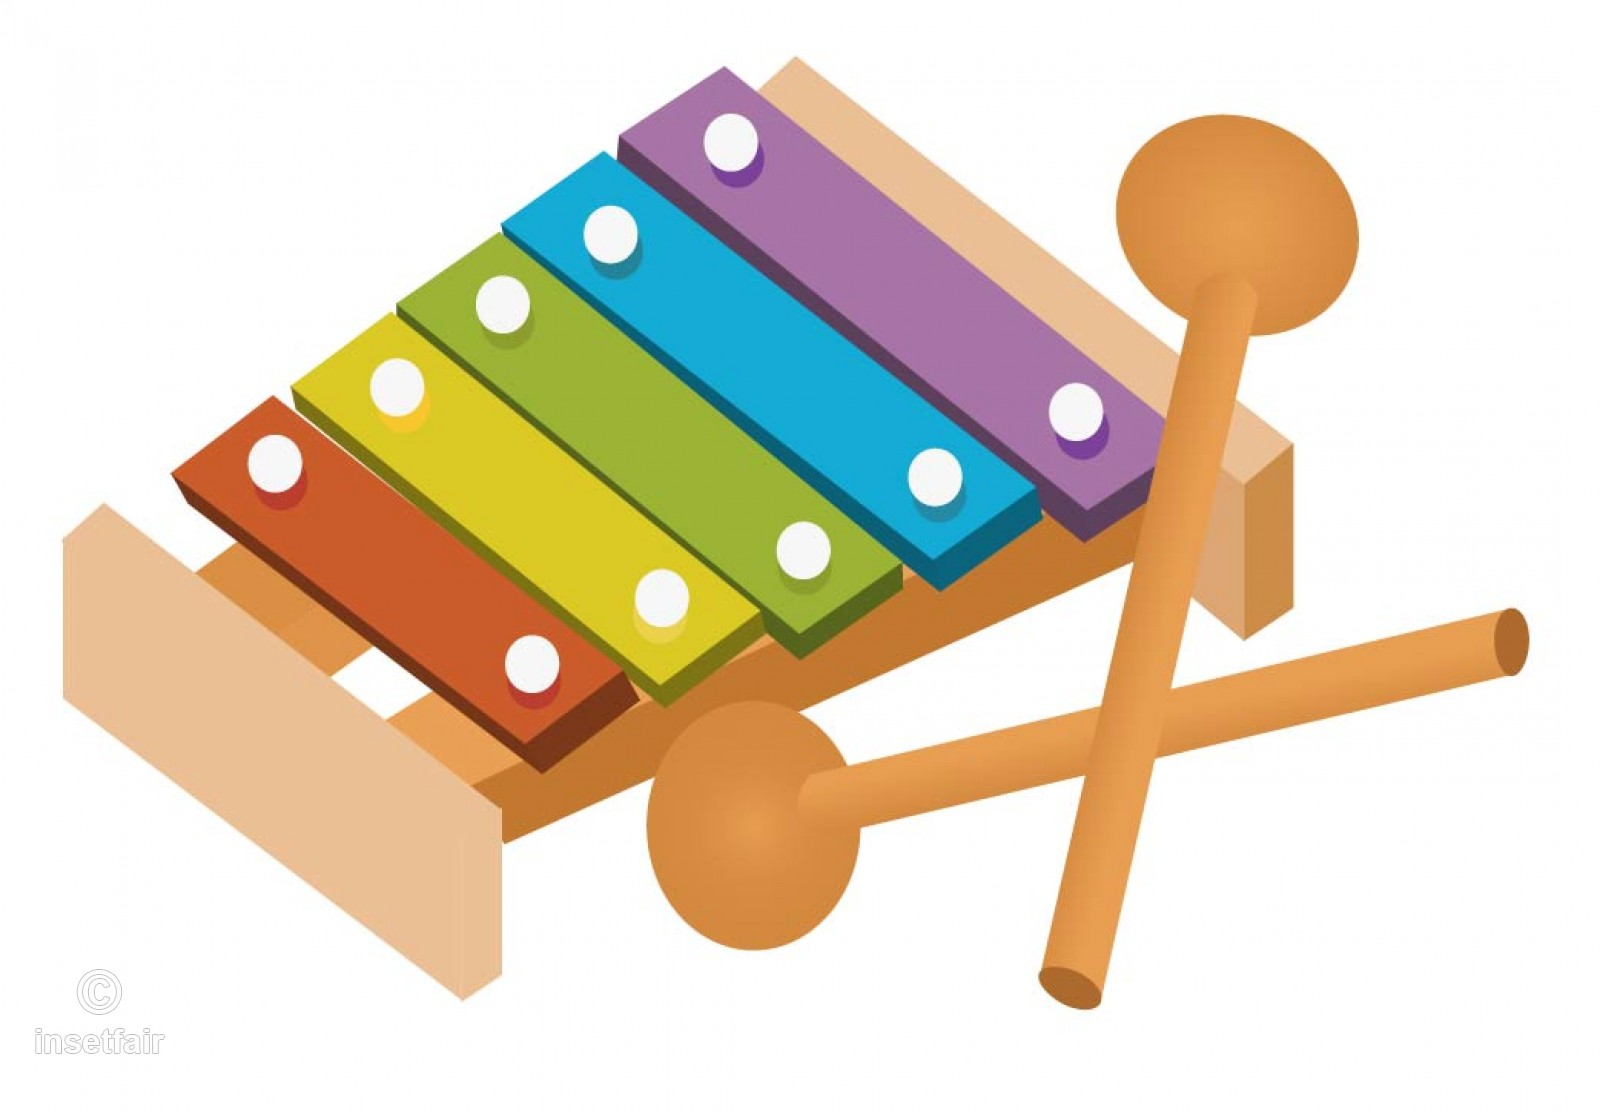 Xylophone clipart tool. Free download clip art